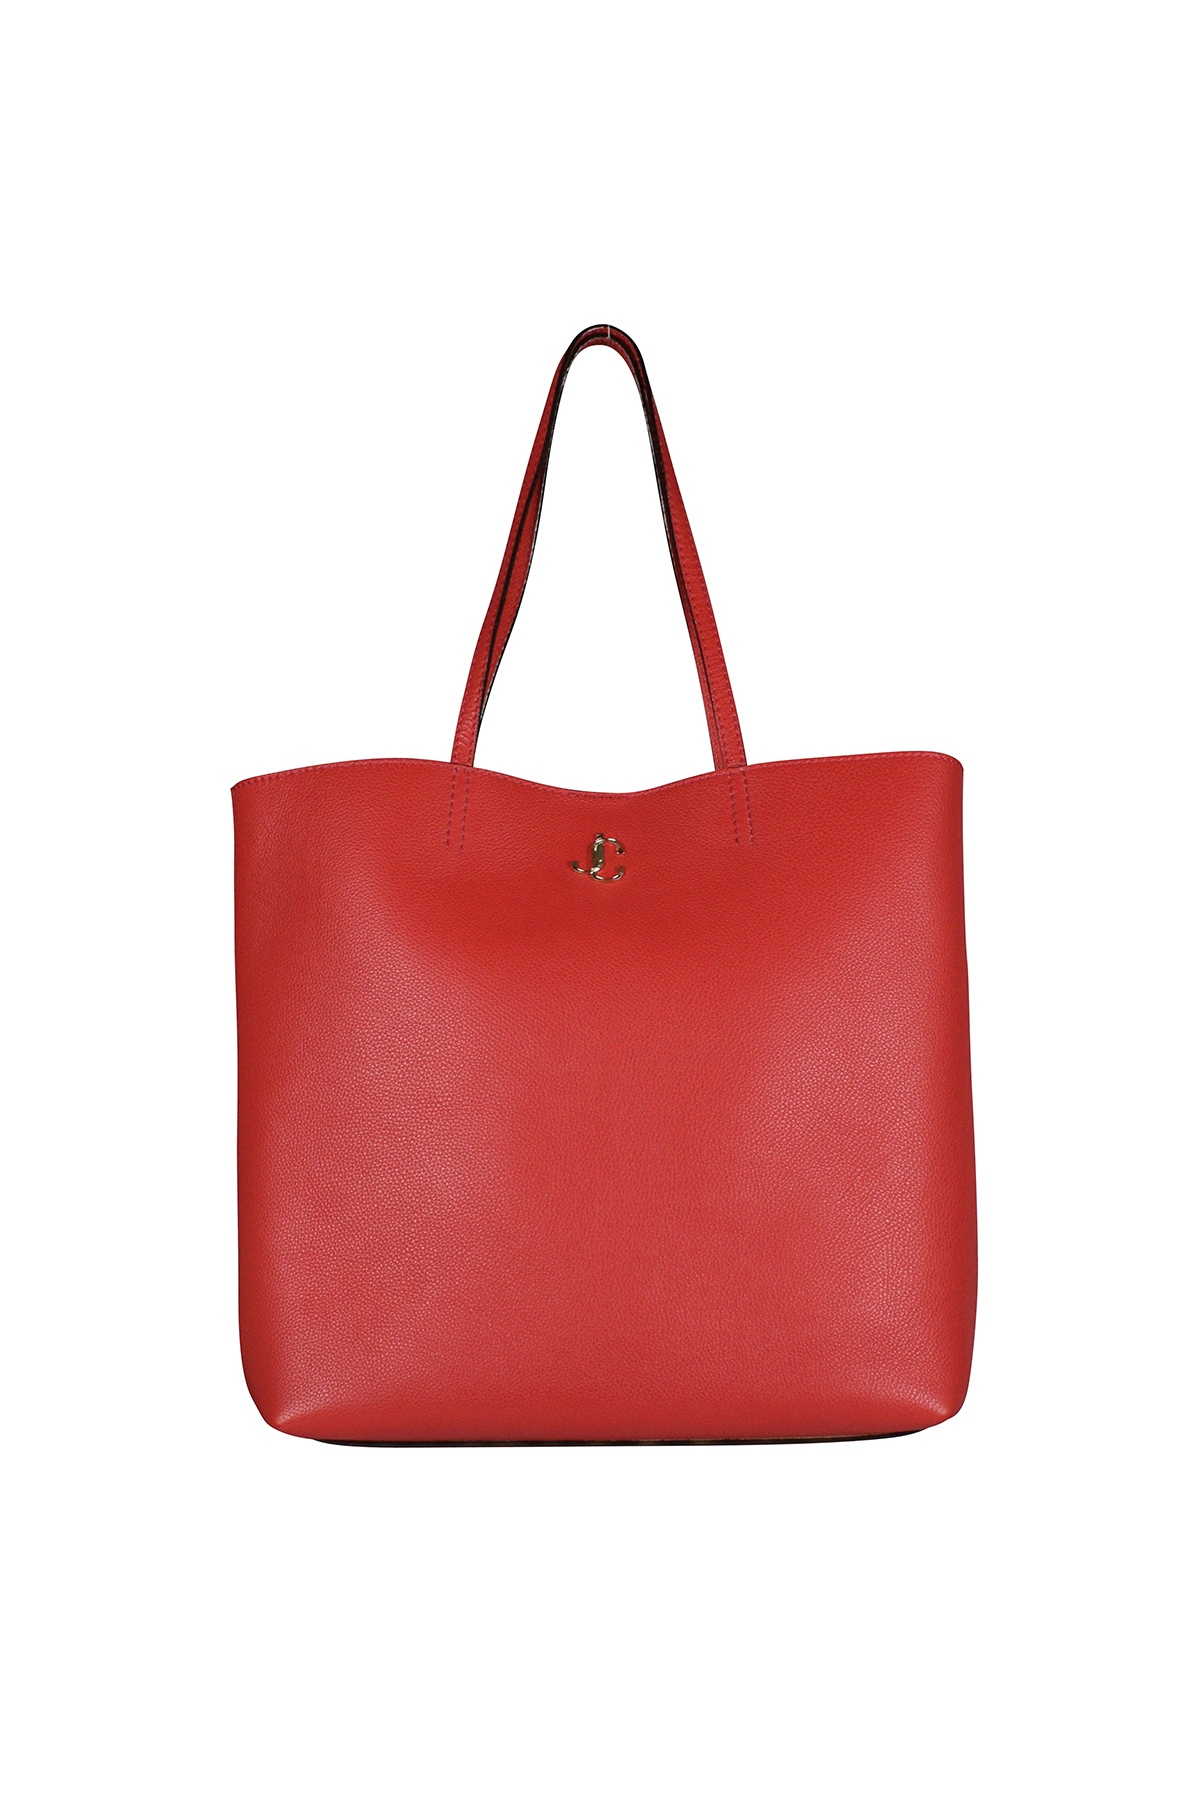 Jimmy Choo red handbag in grained leather.